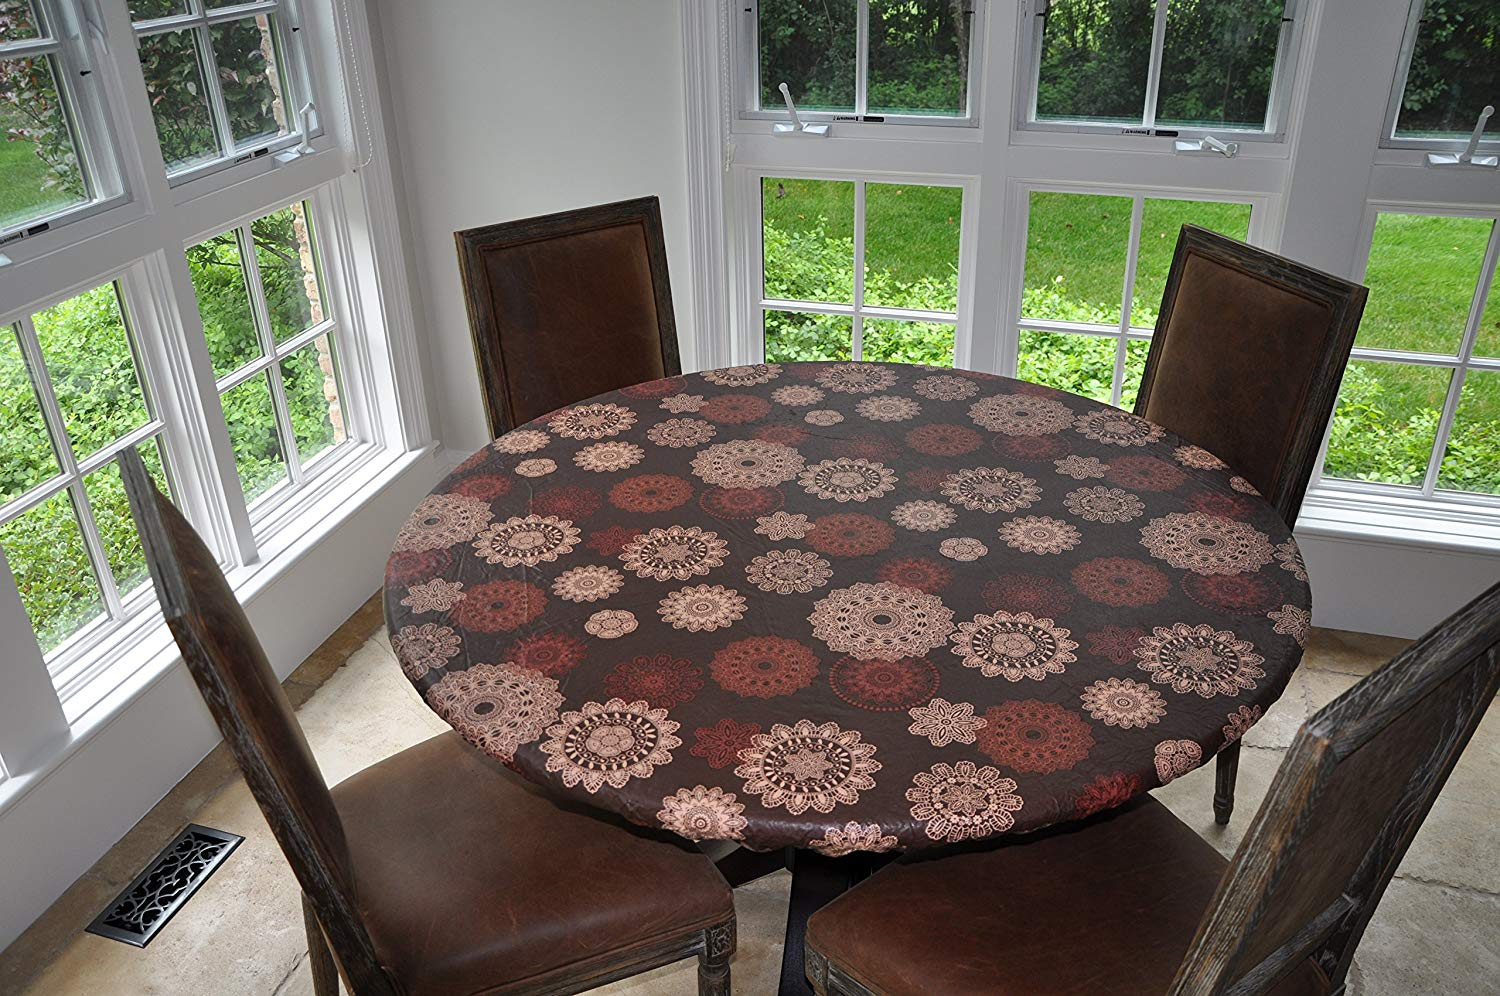 "Elastic Edged Flannel Backed Vinyl Fitted Table Cover - Medallion Pattern - Small Round - Fits Tables up to 44"" Diameter"